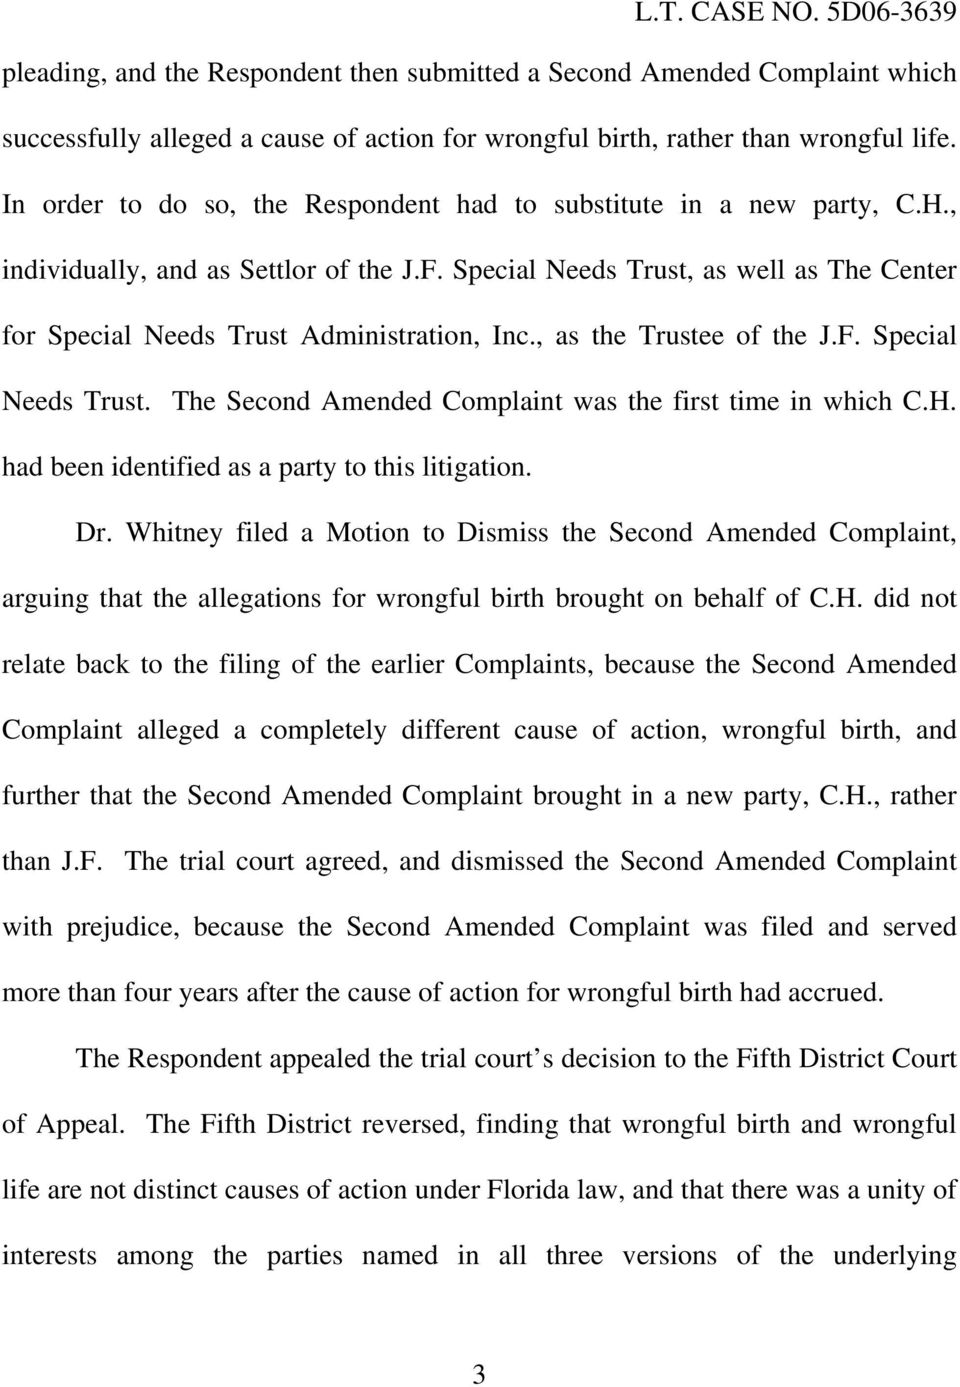 Special Needs Trust, as well as The Center for Special Needs Trust Administration, Inc., as the Trustee of the J.F. Special Needs Trust. The Second Amended Complaint was the first time in which C.H.